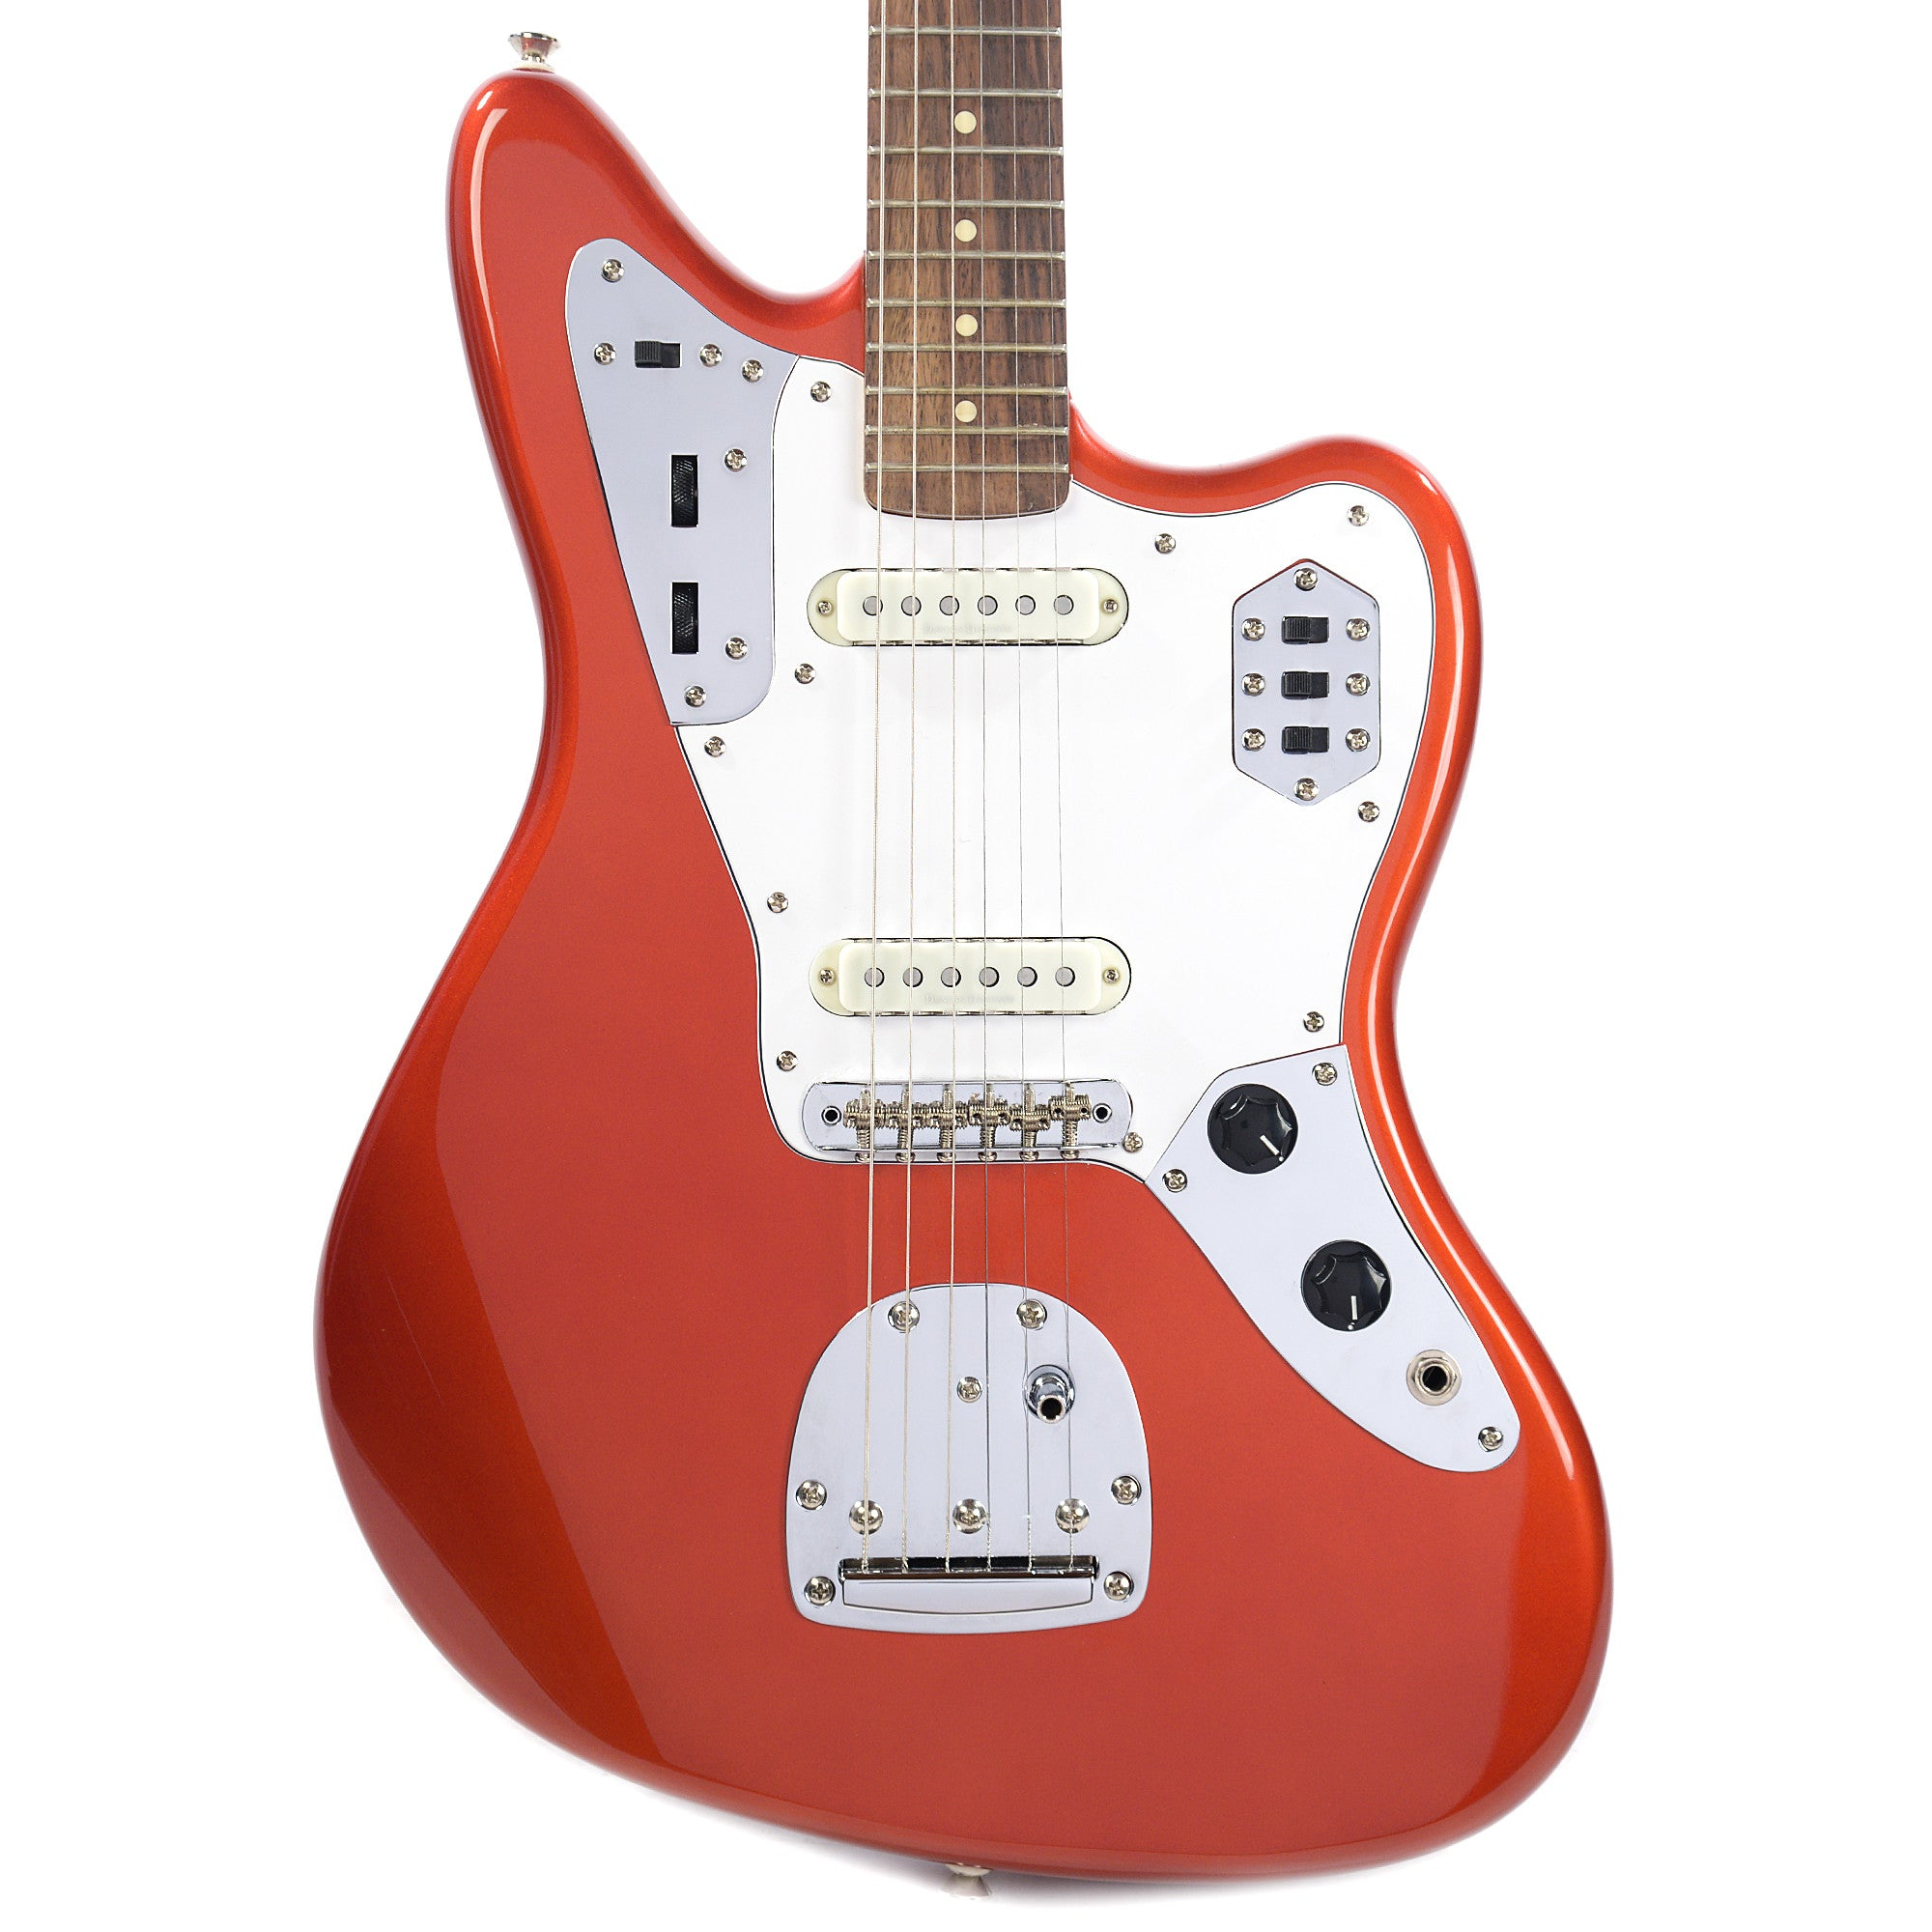 My eb bass squier vintage modified jazz bass - Squier Vintage Modified Jaguar Candy Apple Red